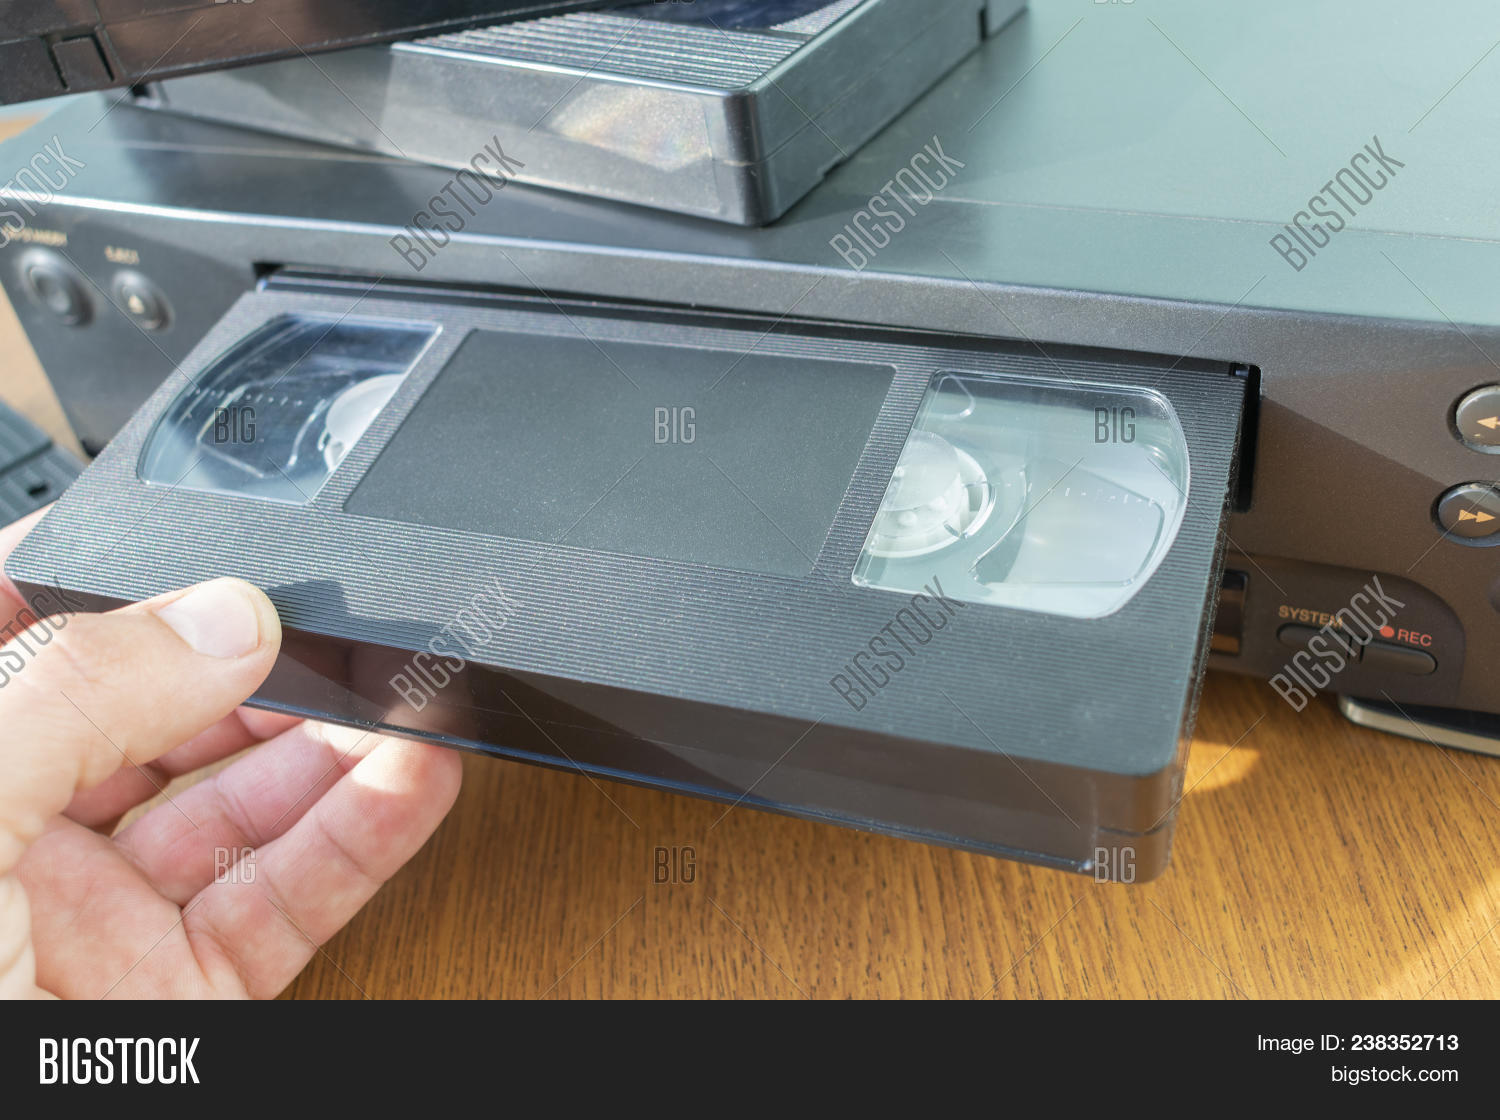 Videocassette Is Put Into The Video Recorder To Watch Another Cassette